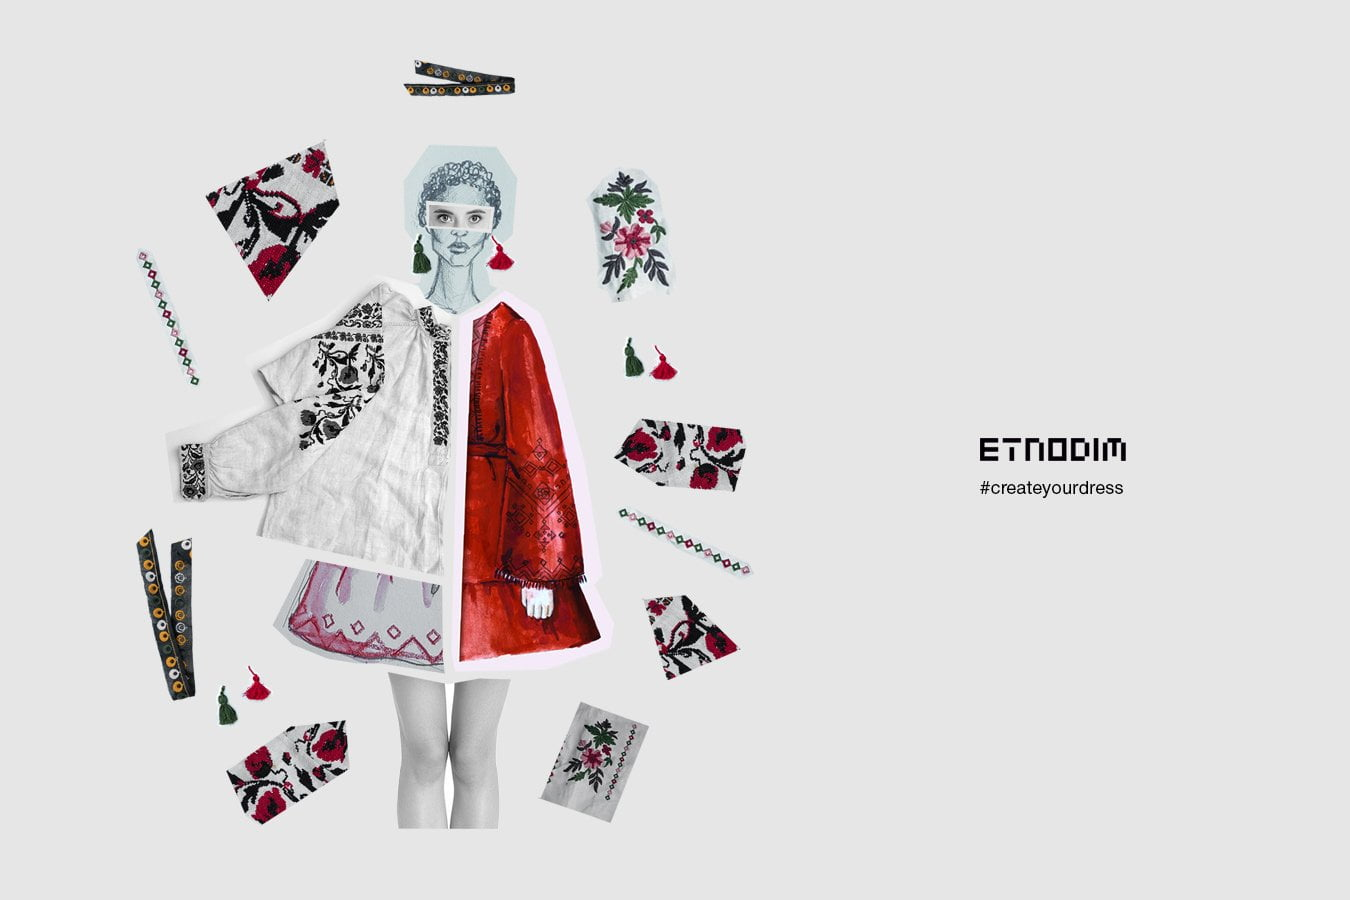 Create Embroidery Design And Get 10 000 Uah Etnodim